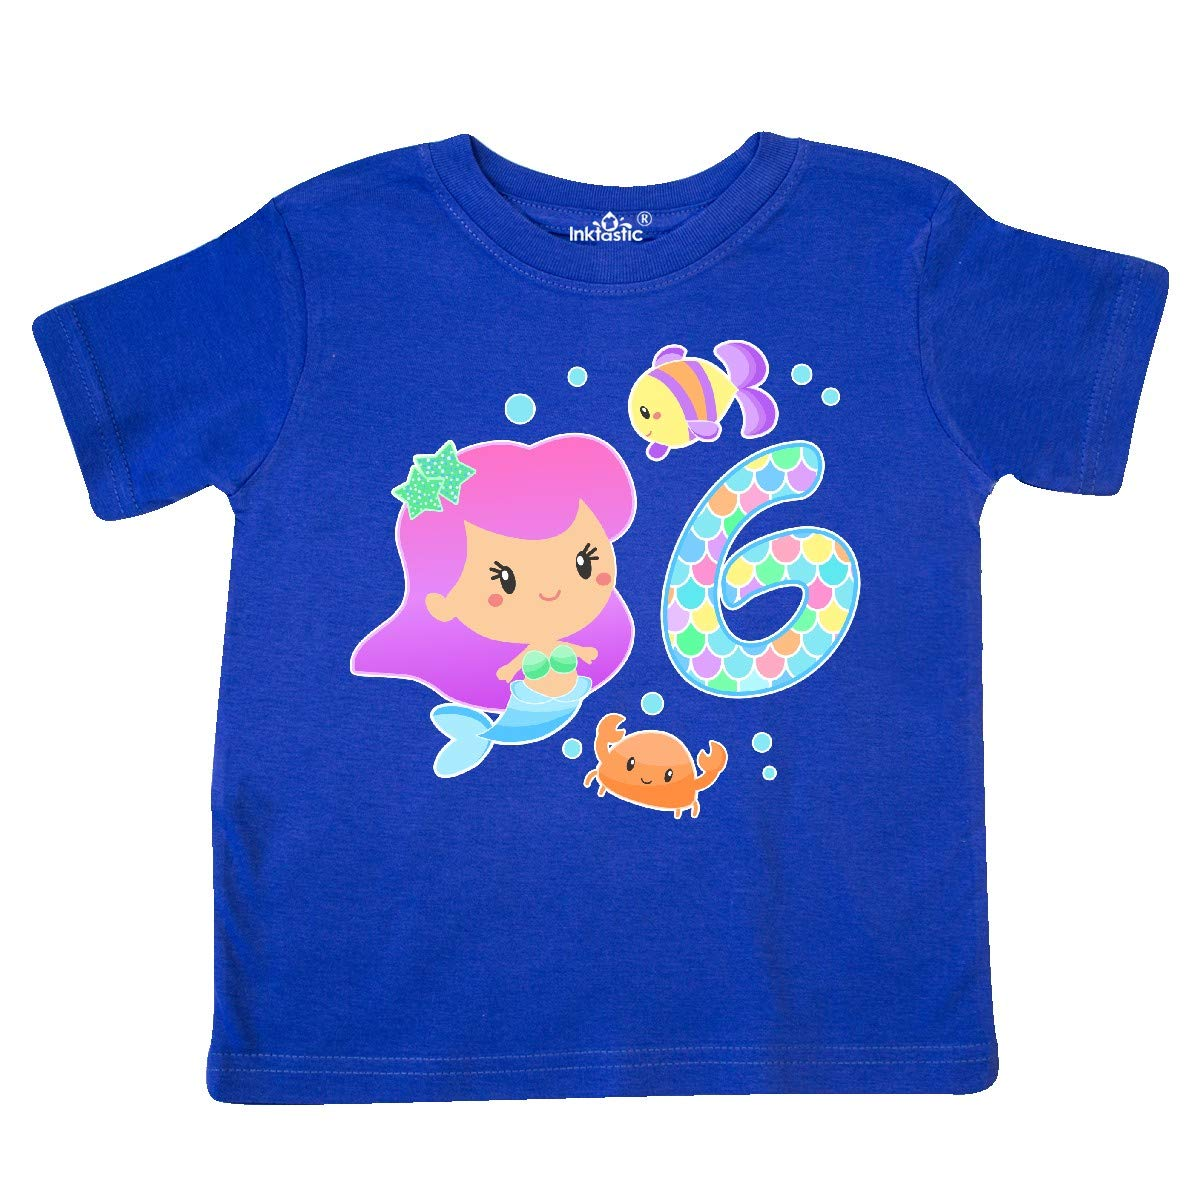 inktastic Sixth Birthday Mermaid with Fish and Crab Toddler T-Shirt